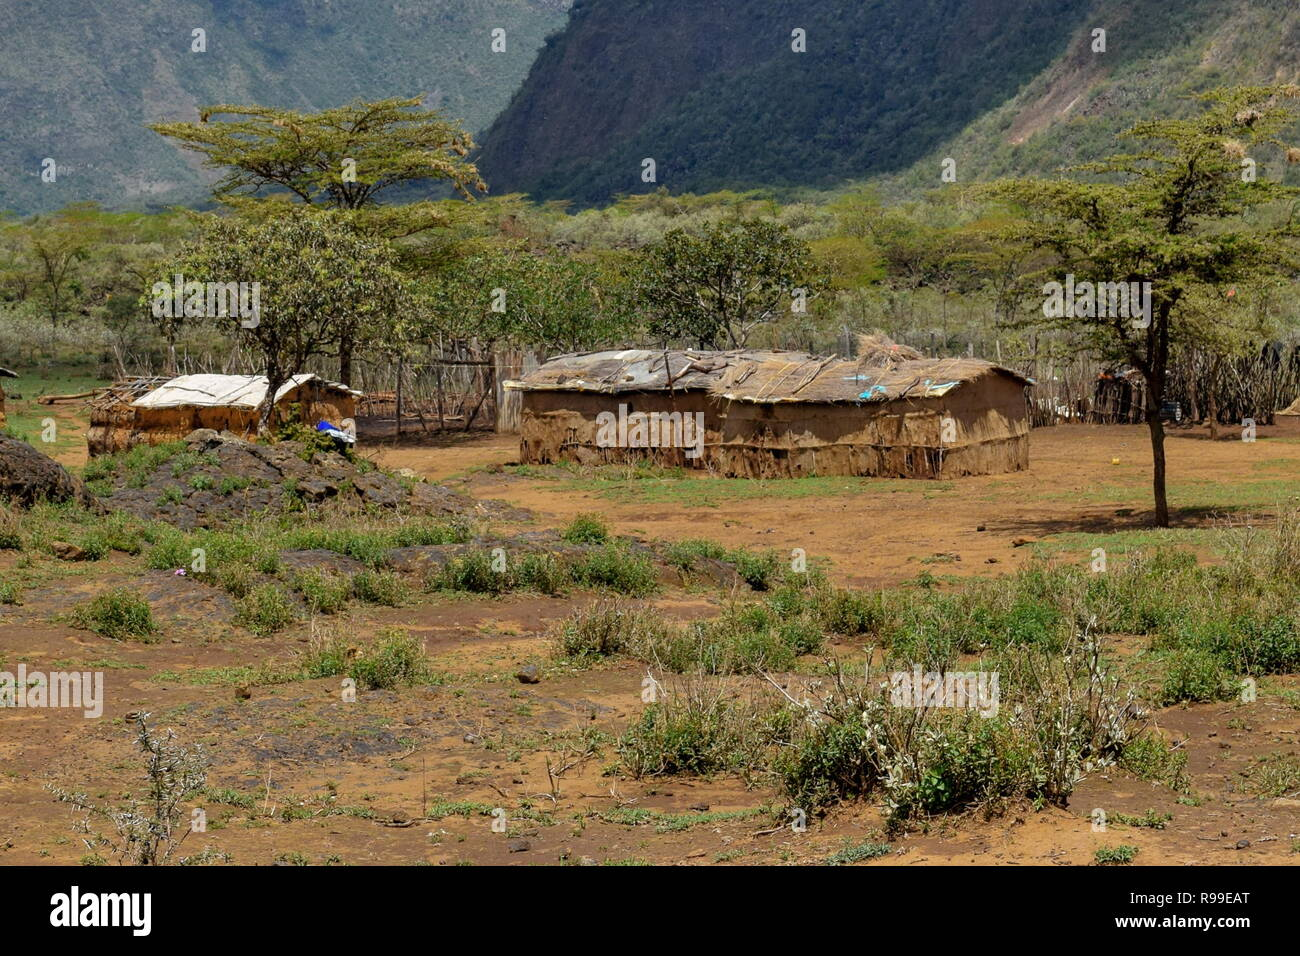 Traditional Masai homesteads at the foothills of Mount Suswa, Rift Valley, Kenya Stock Photo